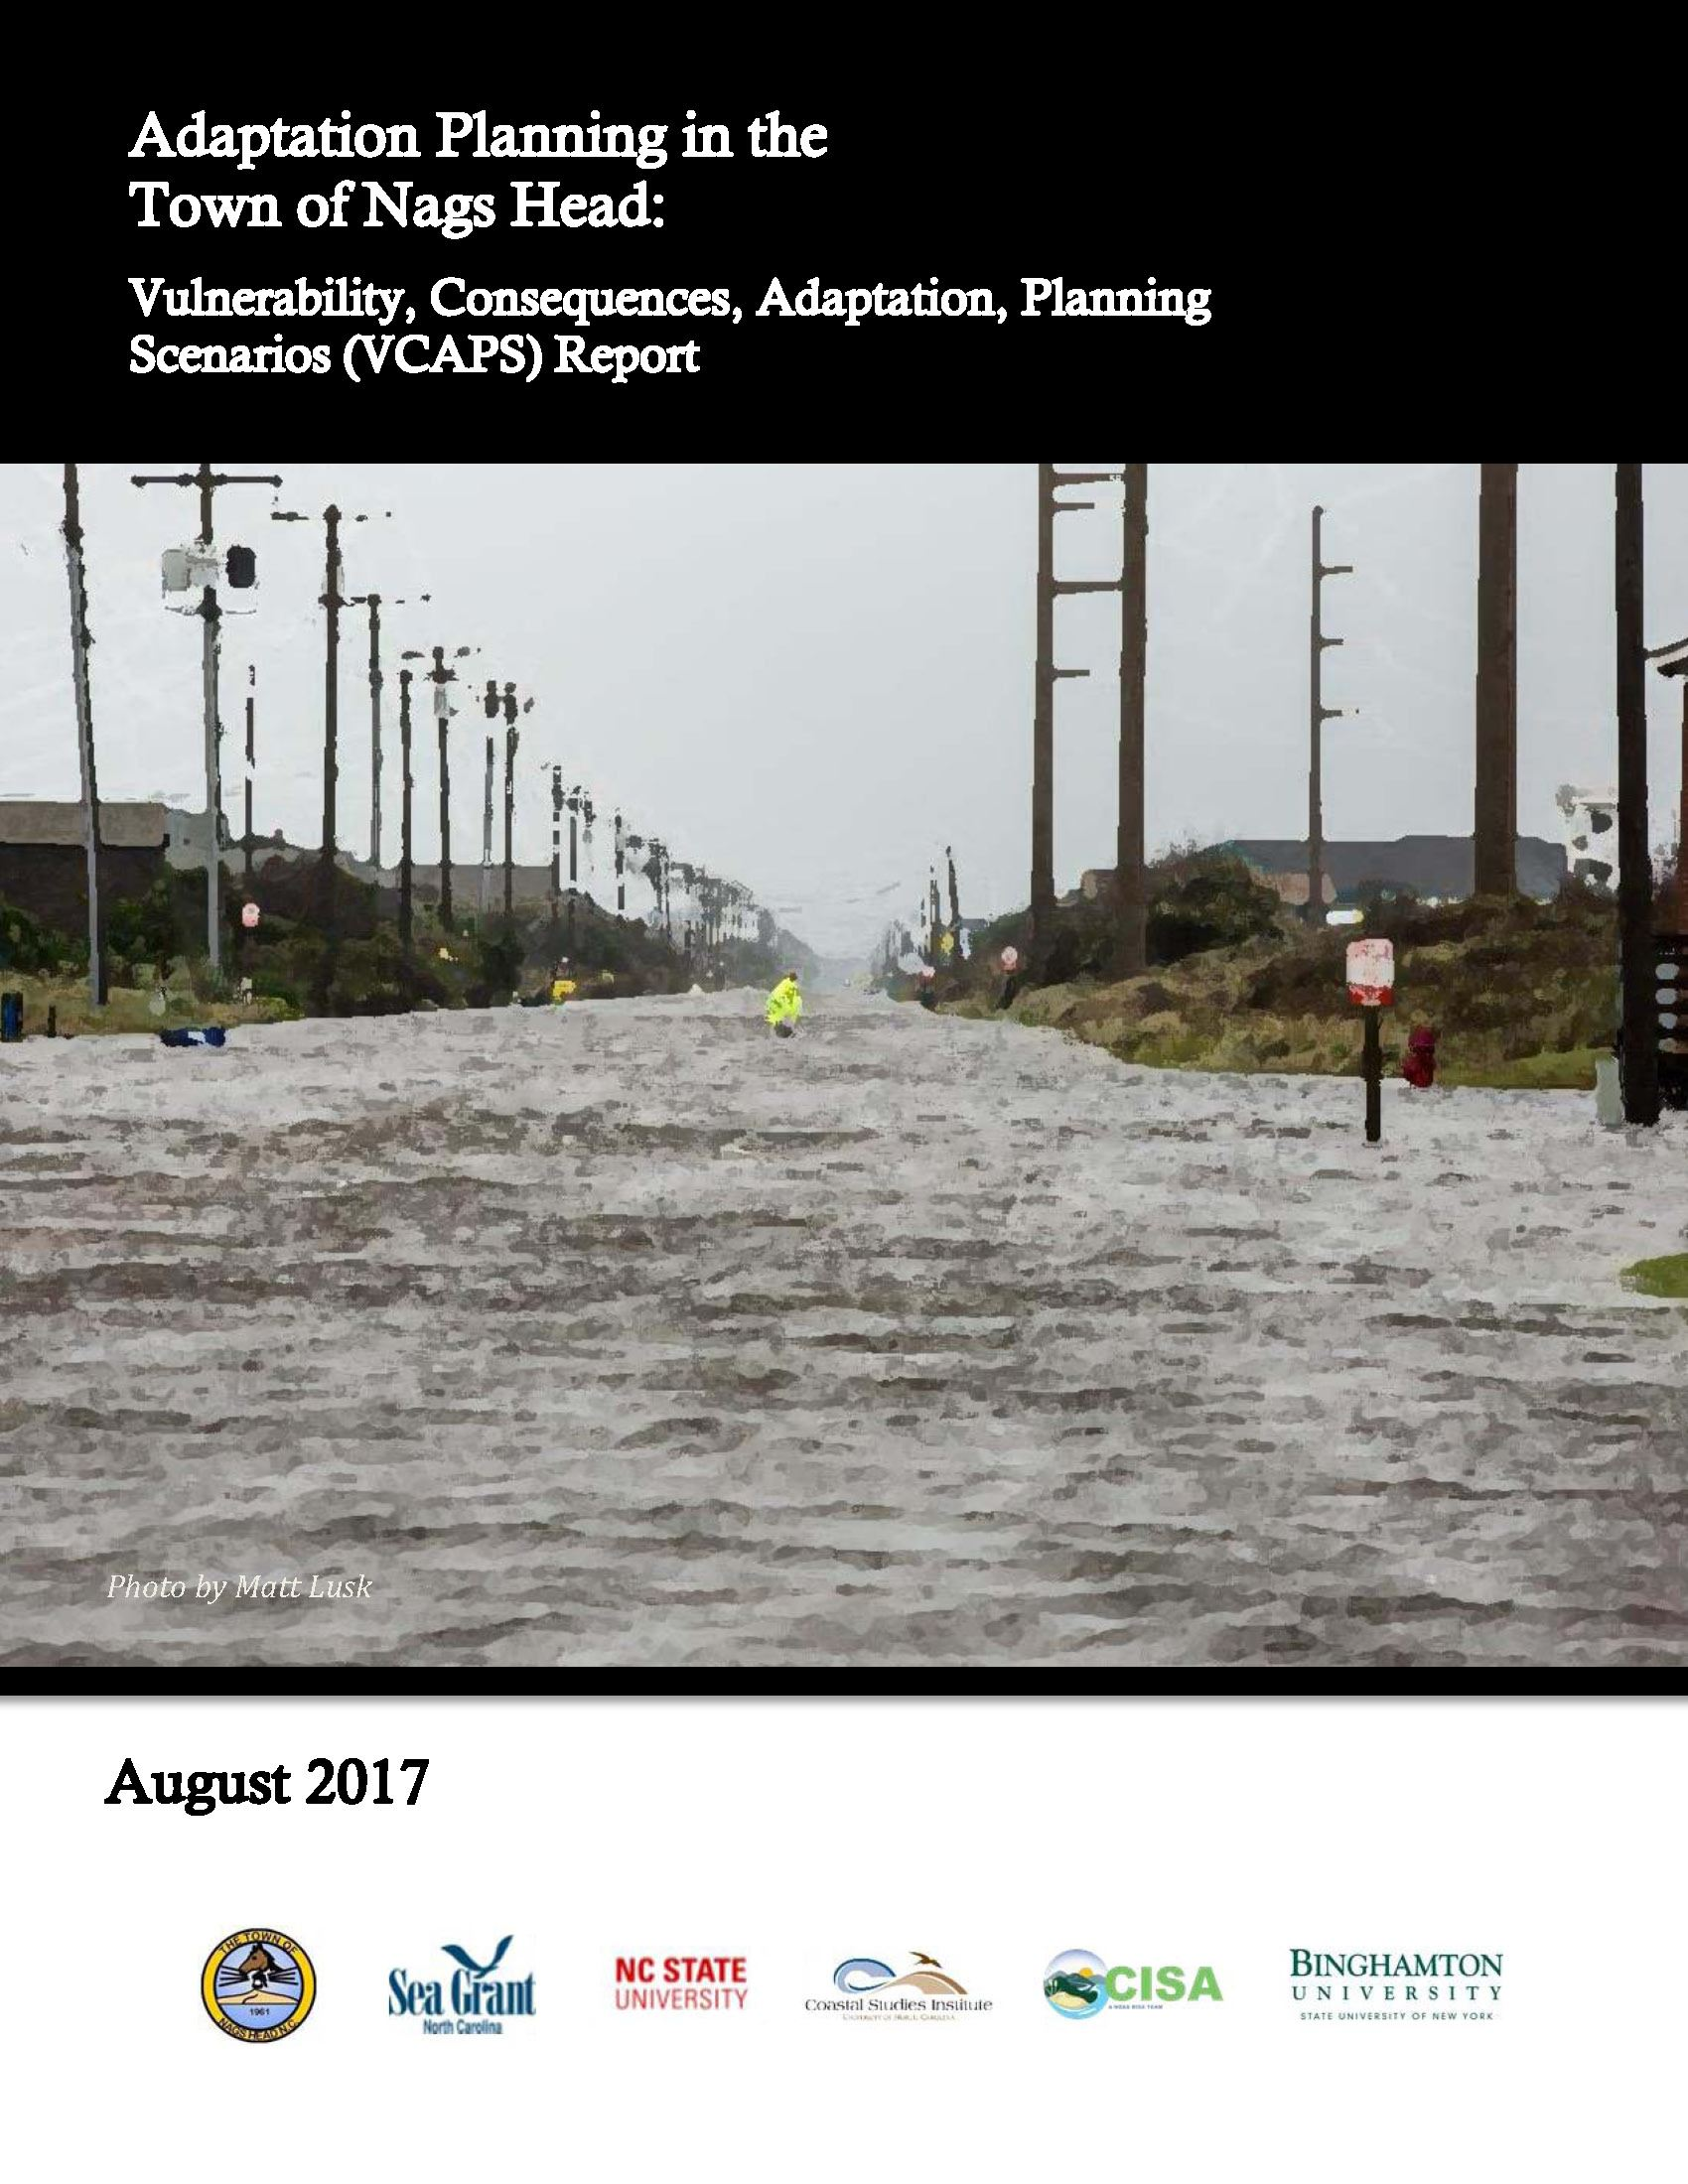 Vulnerability, Adaptation, Planning Scenarios (VCAPS) Report